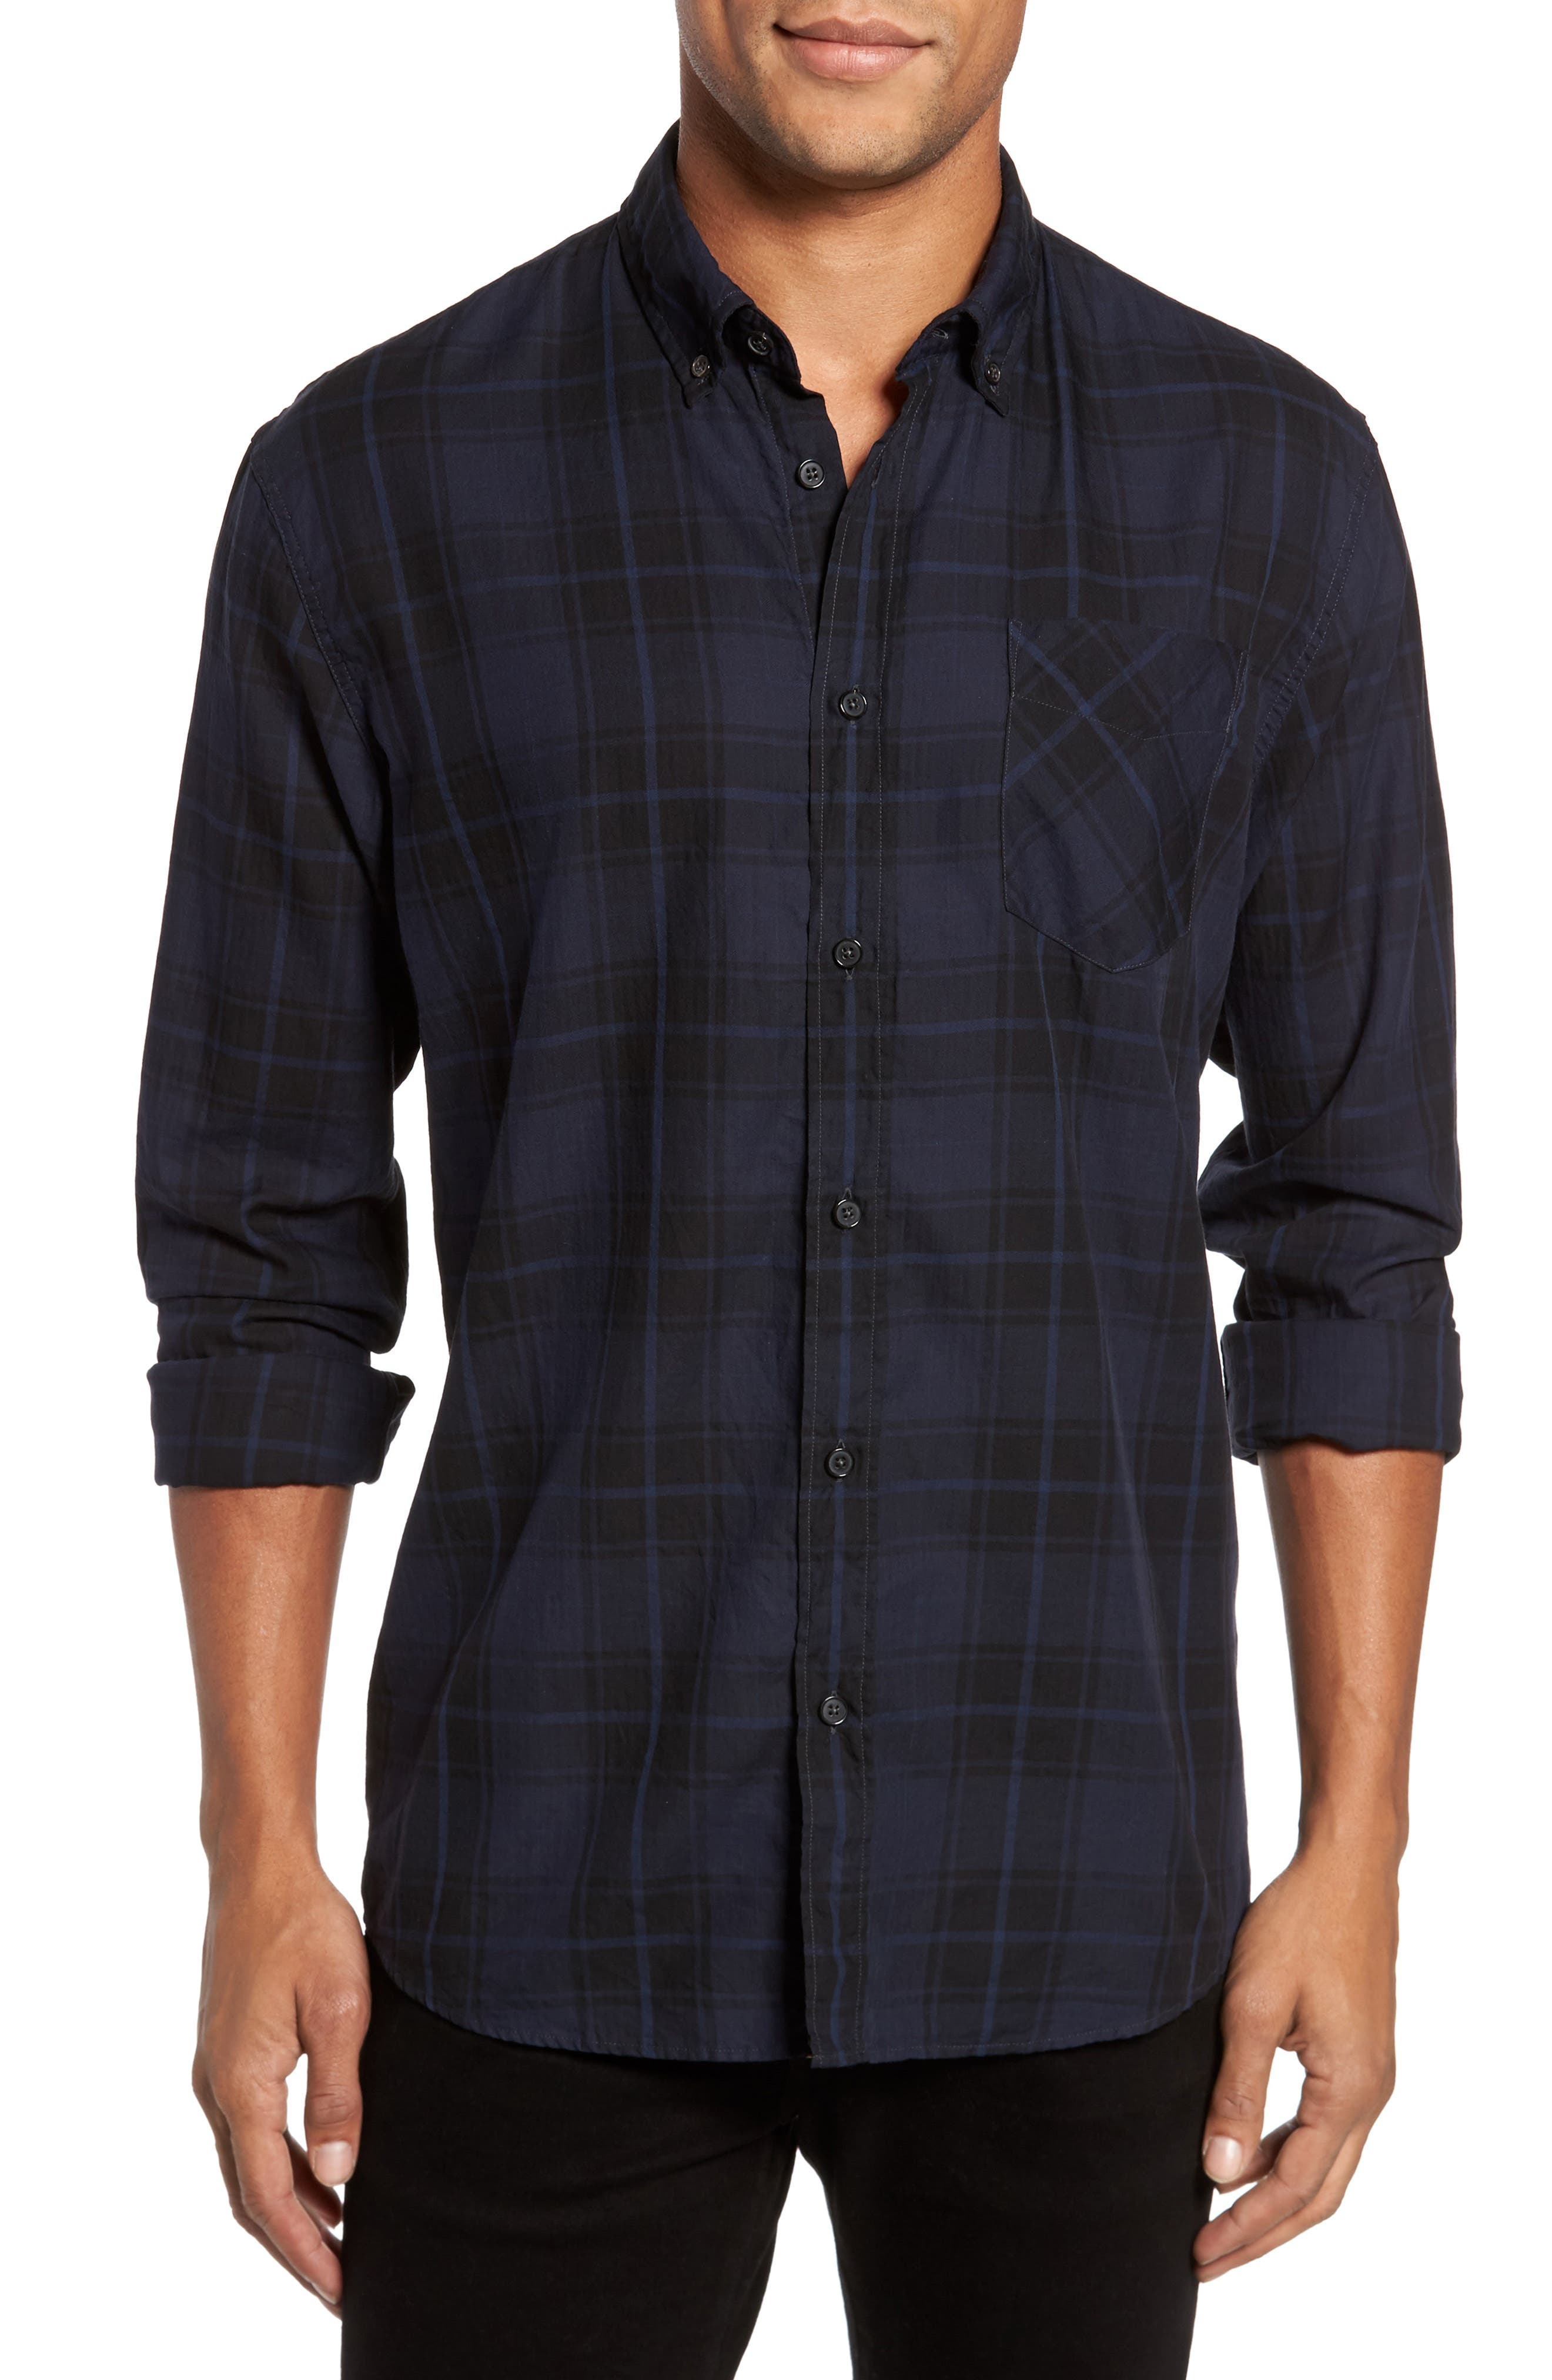 Wallace Slim Fit Sport Shirt,                             Main thumbnail 1, color,                             Navy/ Black